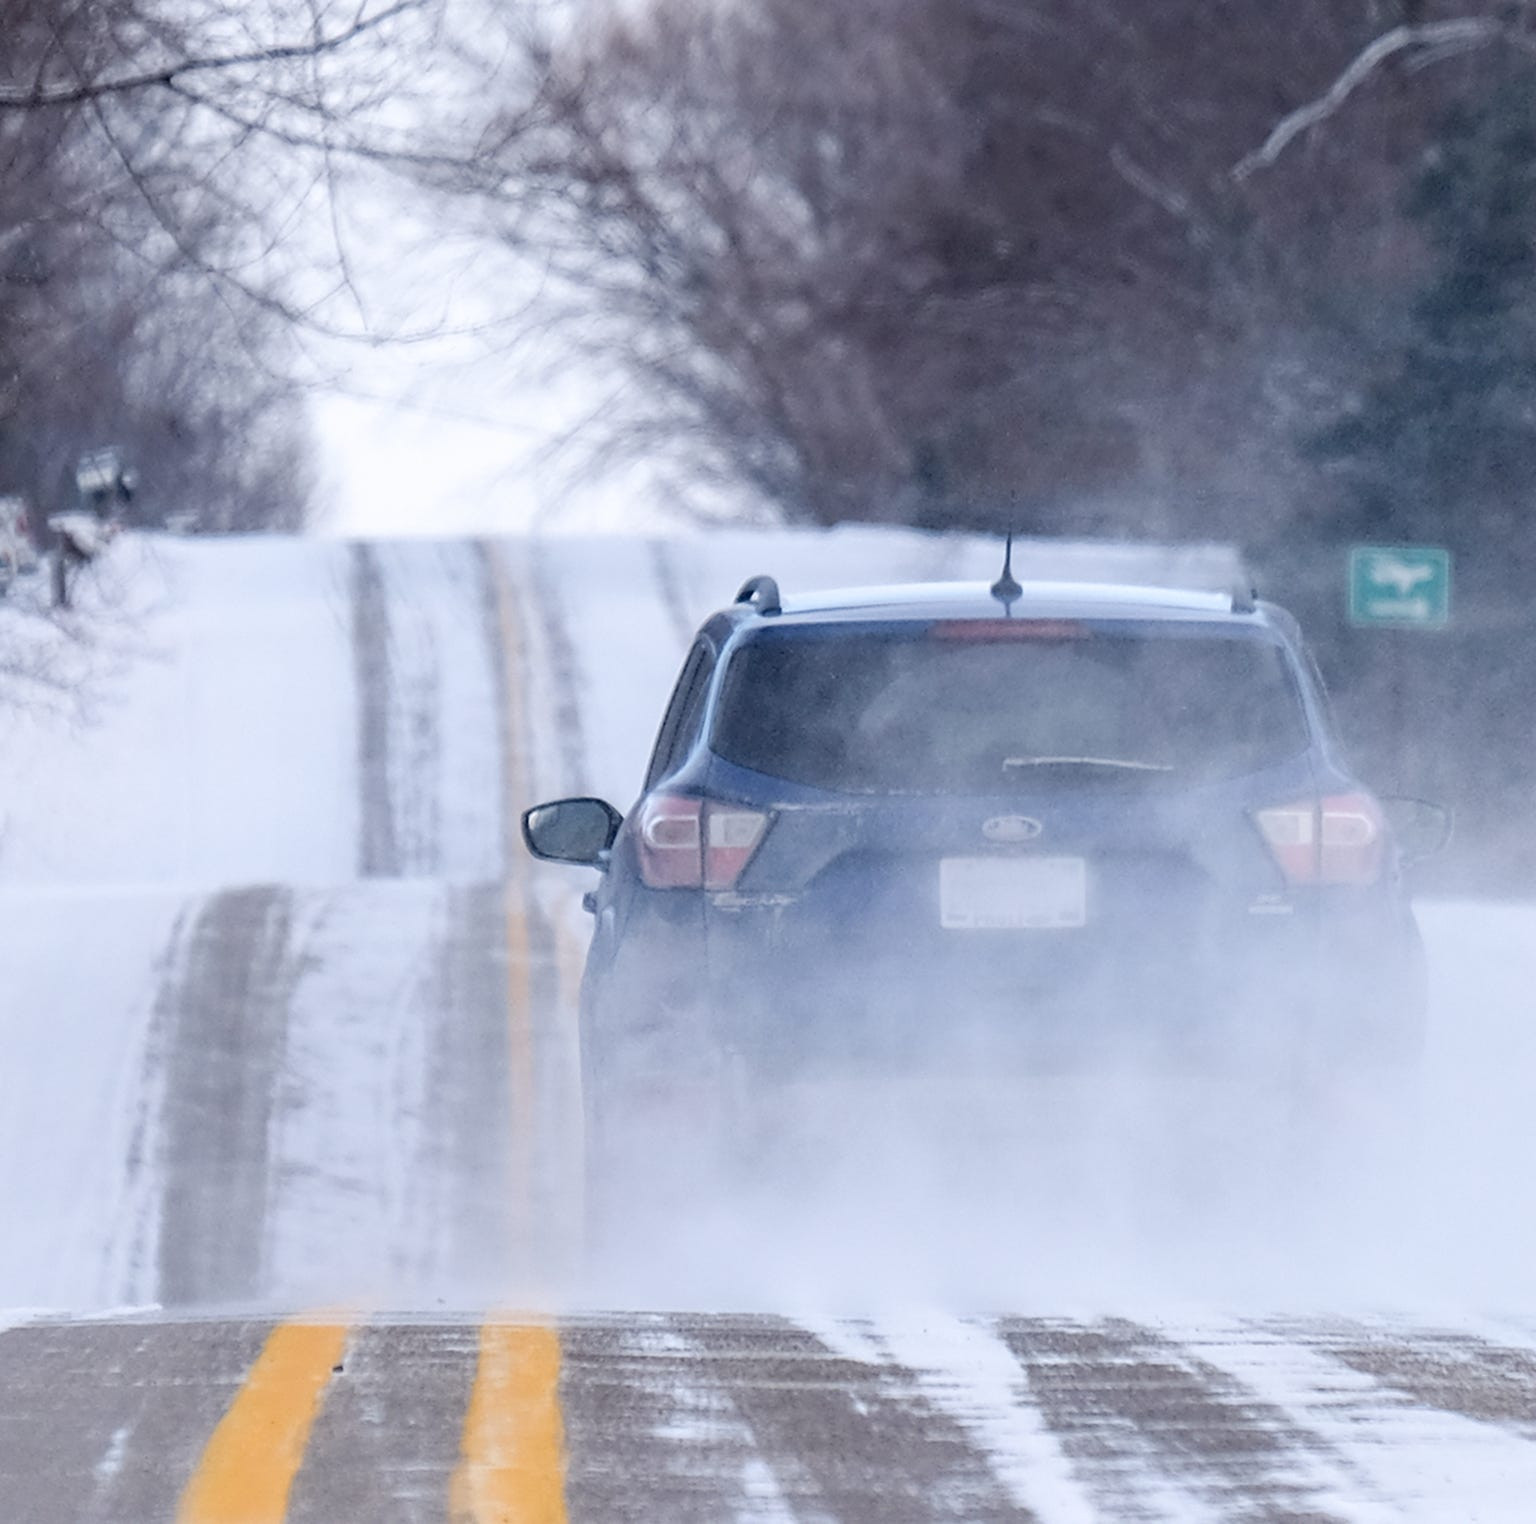 Lansing to miss worst of massive storm, but freezing rain will return